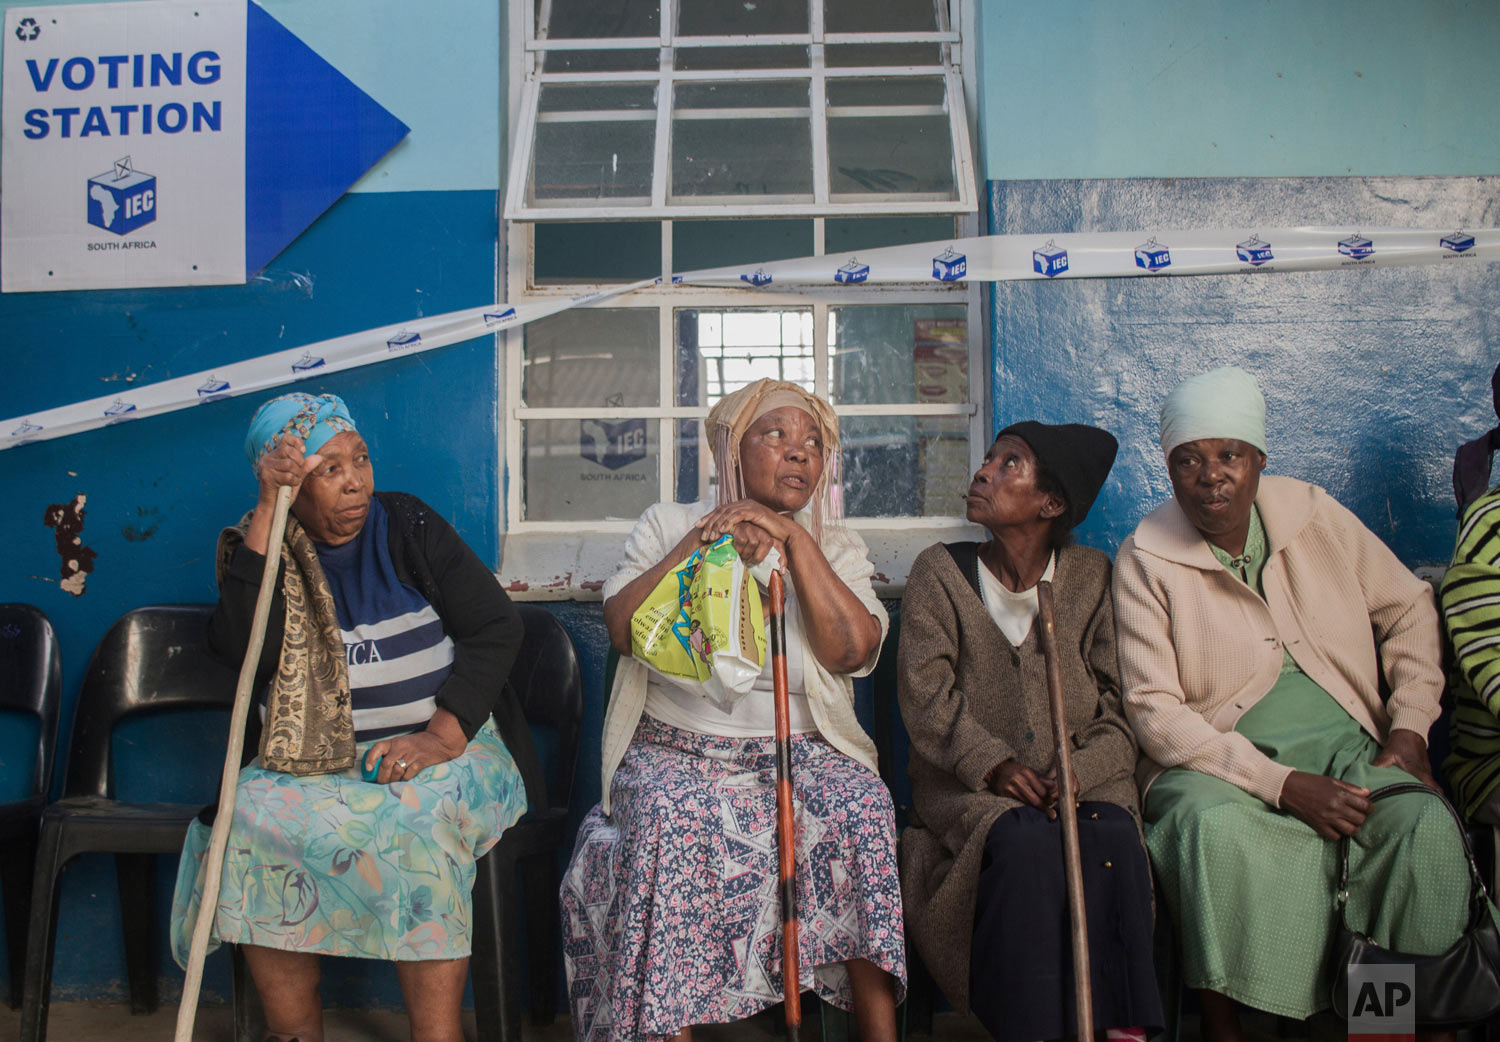 Elderly voters queue to vote in presidential and parliamentary elections, near Durban, South Africa on Wednesday, May 8, 2019. (AP Photo/Mlungisi Mbele)